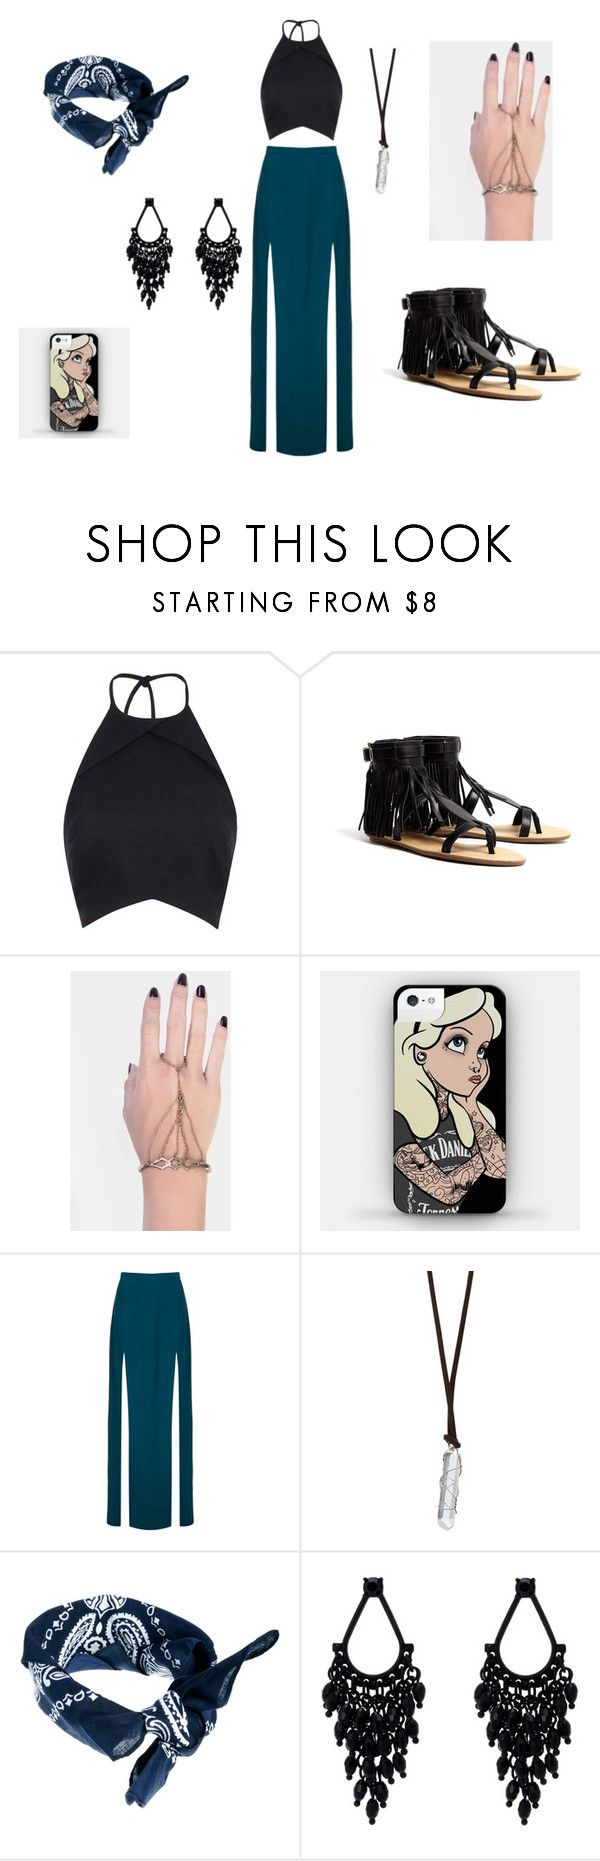 """""""No worries"""" by drew-bell ❤ liked on Polyvore featuring Rebson, Loeffler Randall, INDIE HAIR, Topshop, Hot Topic, ASOS, Oasis, music, indie and hippie"""